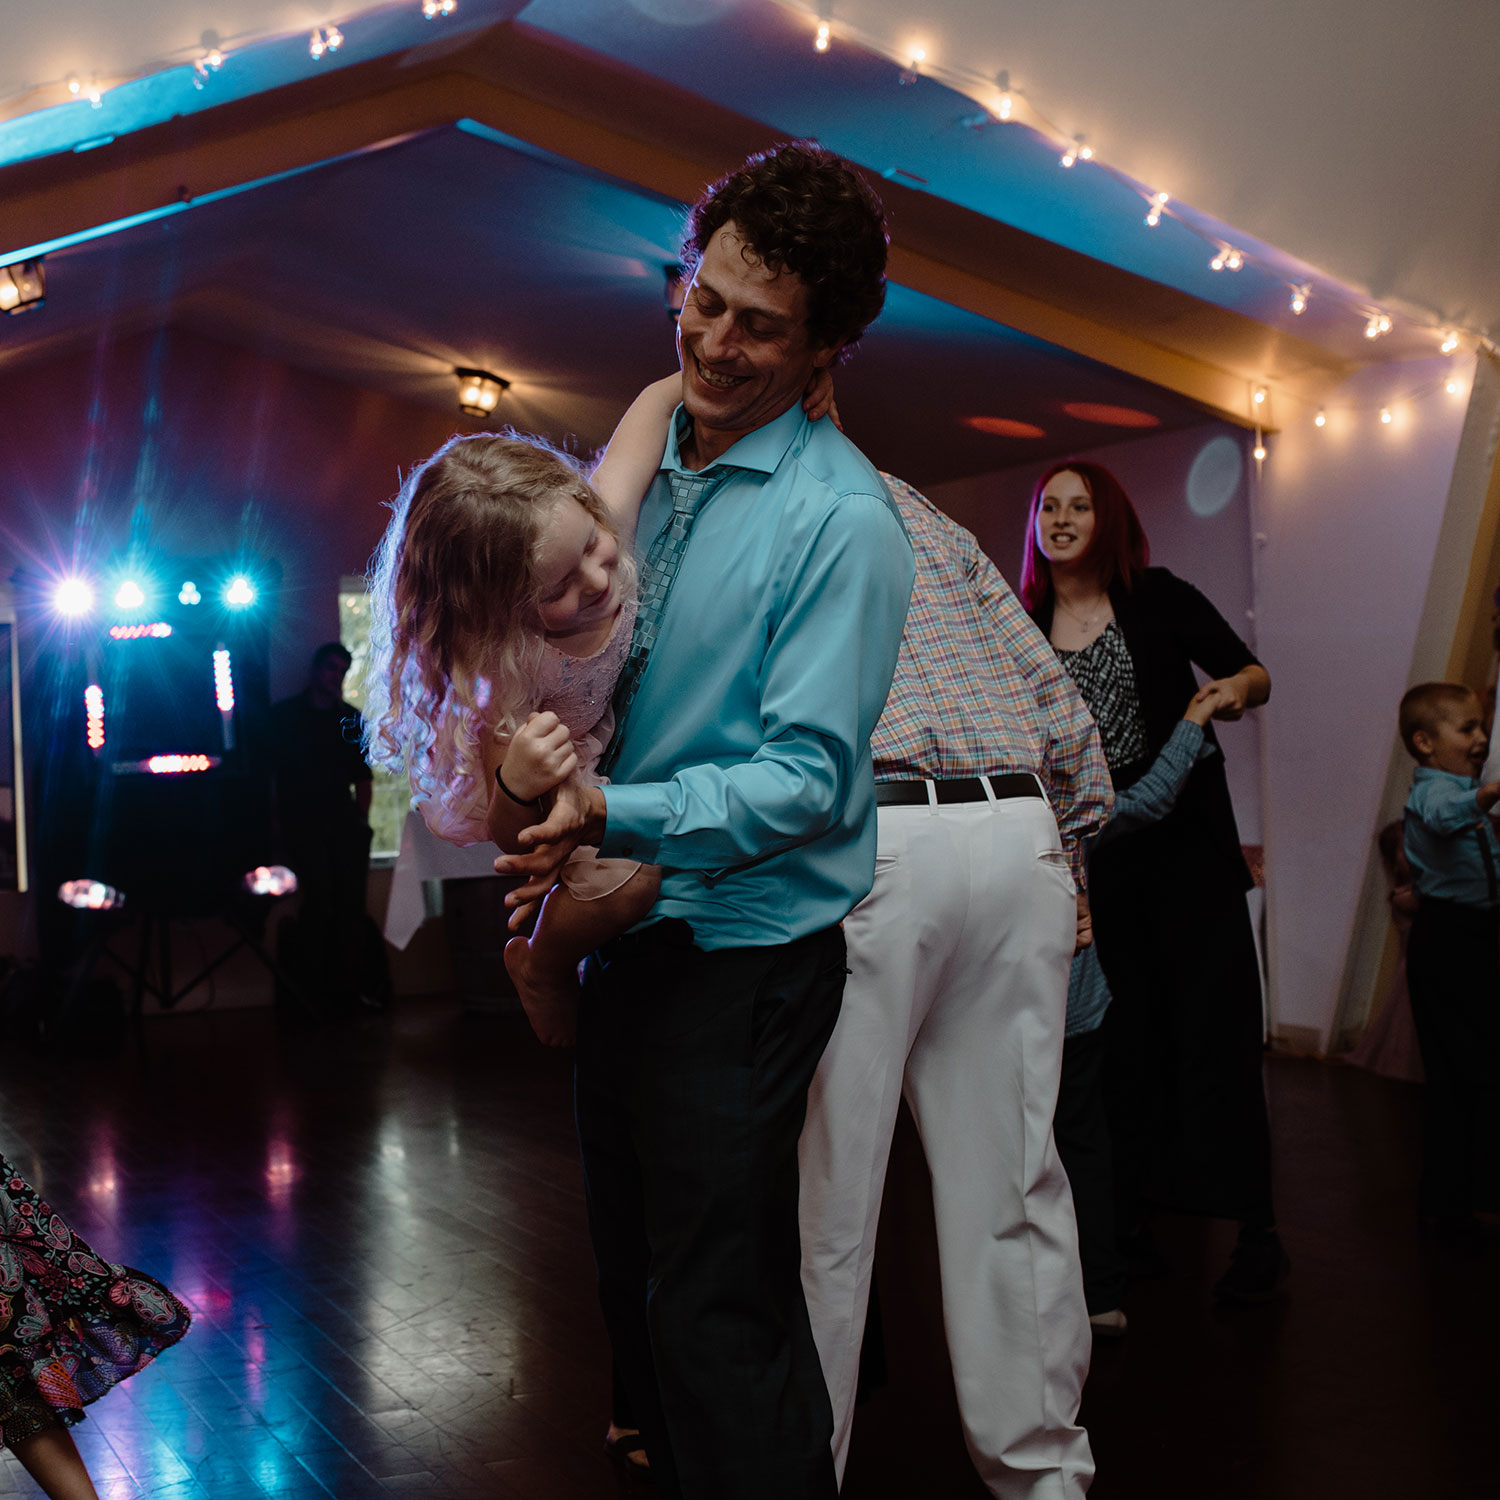 guest-dancing-with-child-wedding-summerset-winery-indianola-iowa-raelyn-ramey-photography.jpg